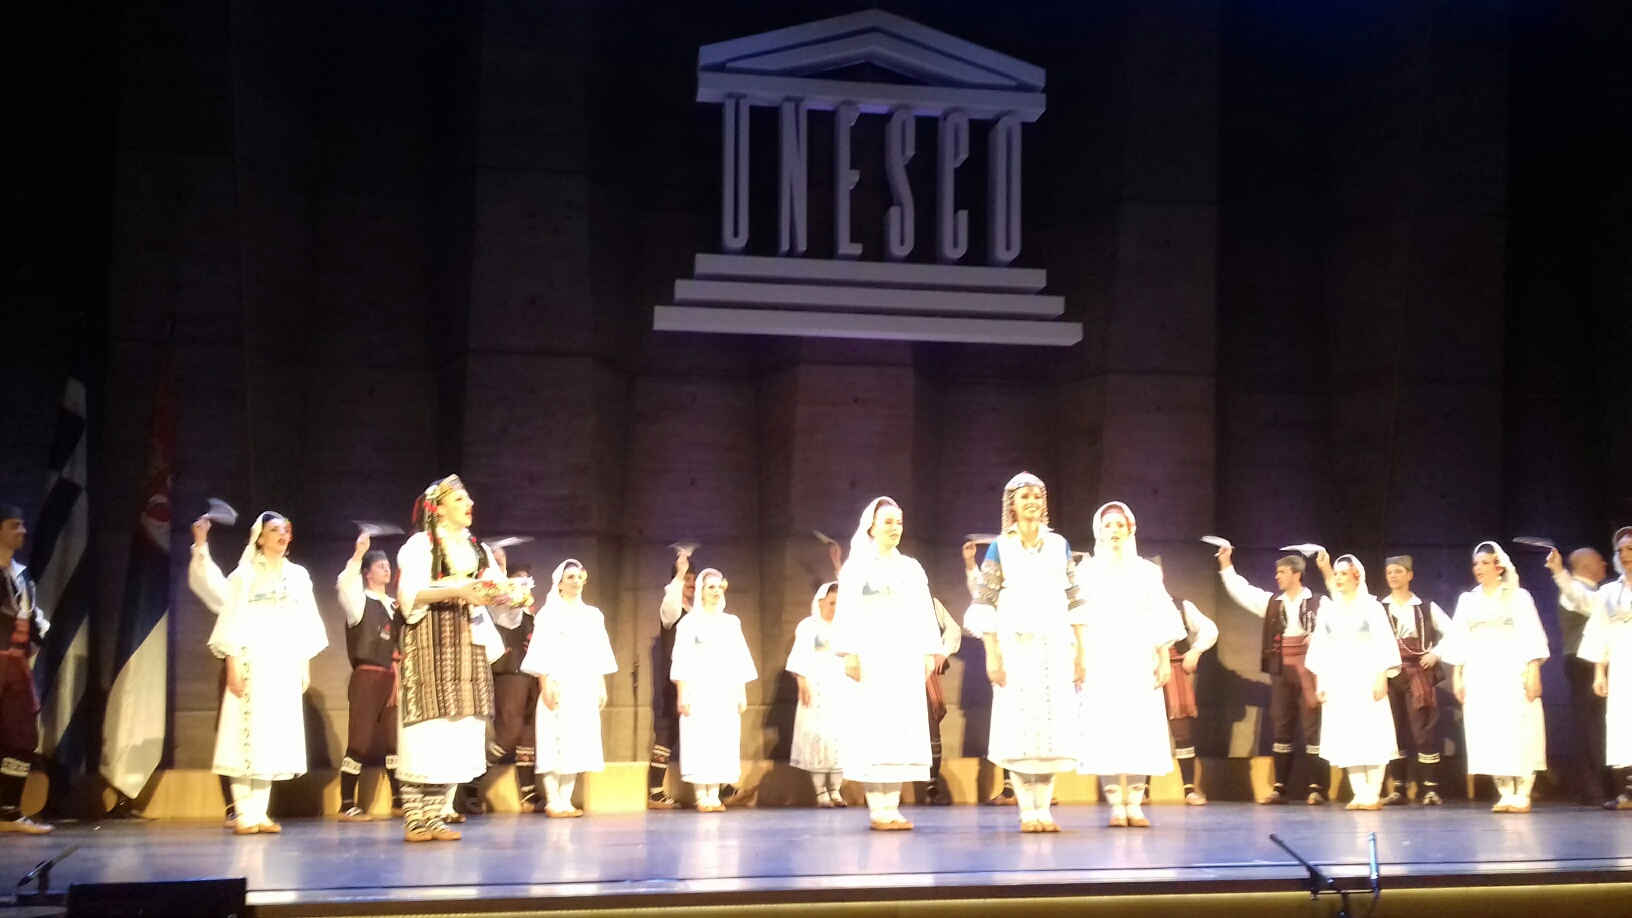 Paris: Serbian and Greek folk dance ensembles perform at UNESCO